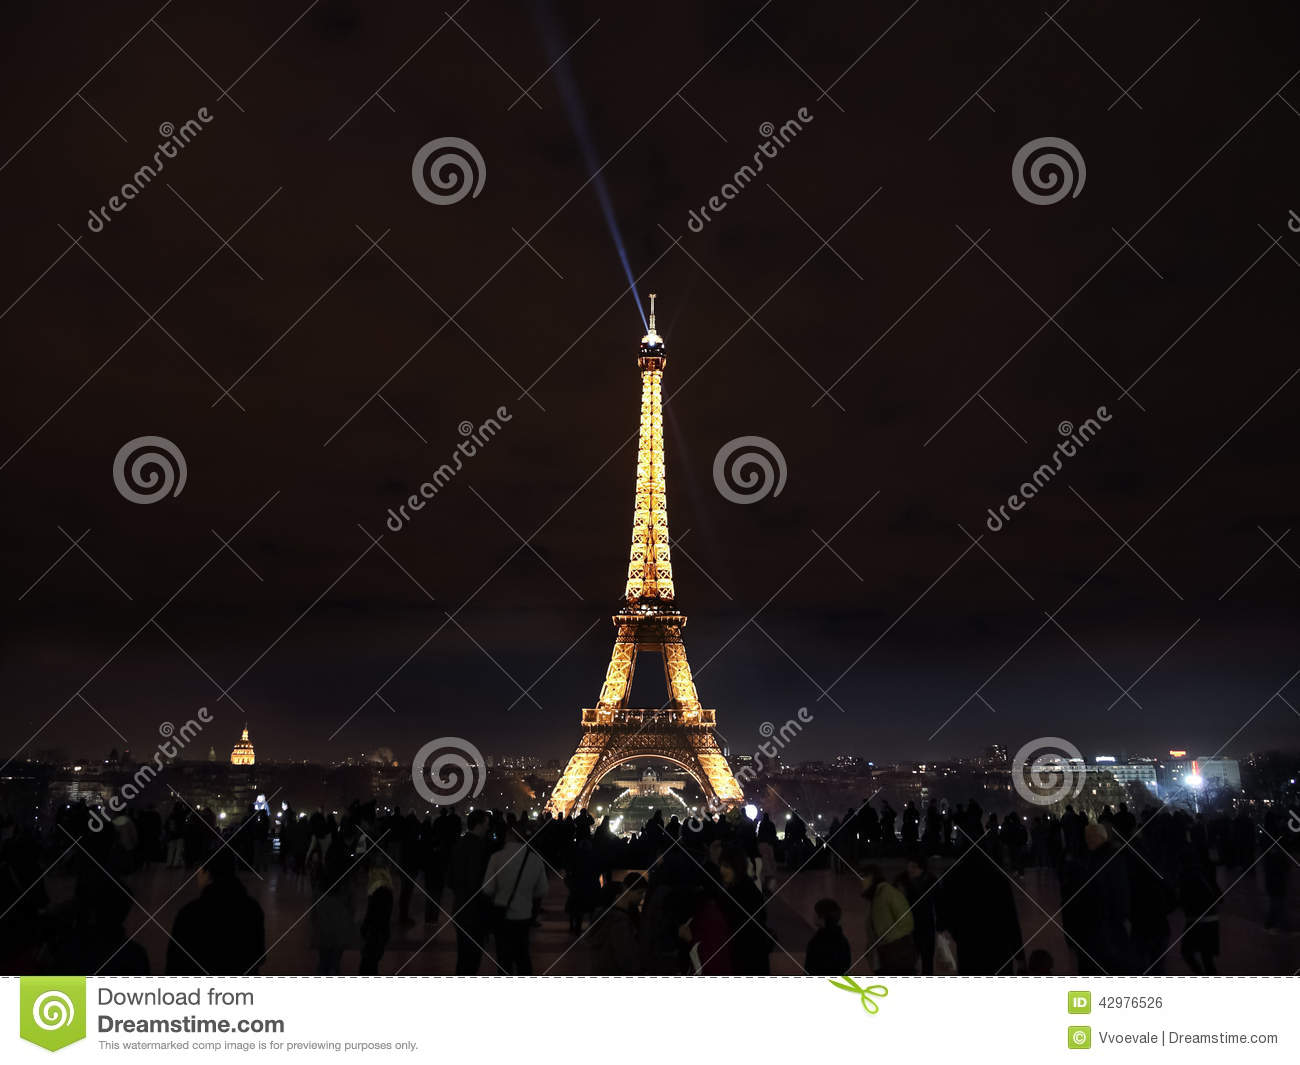 Illumination de nuit de tour eiffel paris photo ditorial image 42976526 - Illumination a paris ...